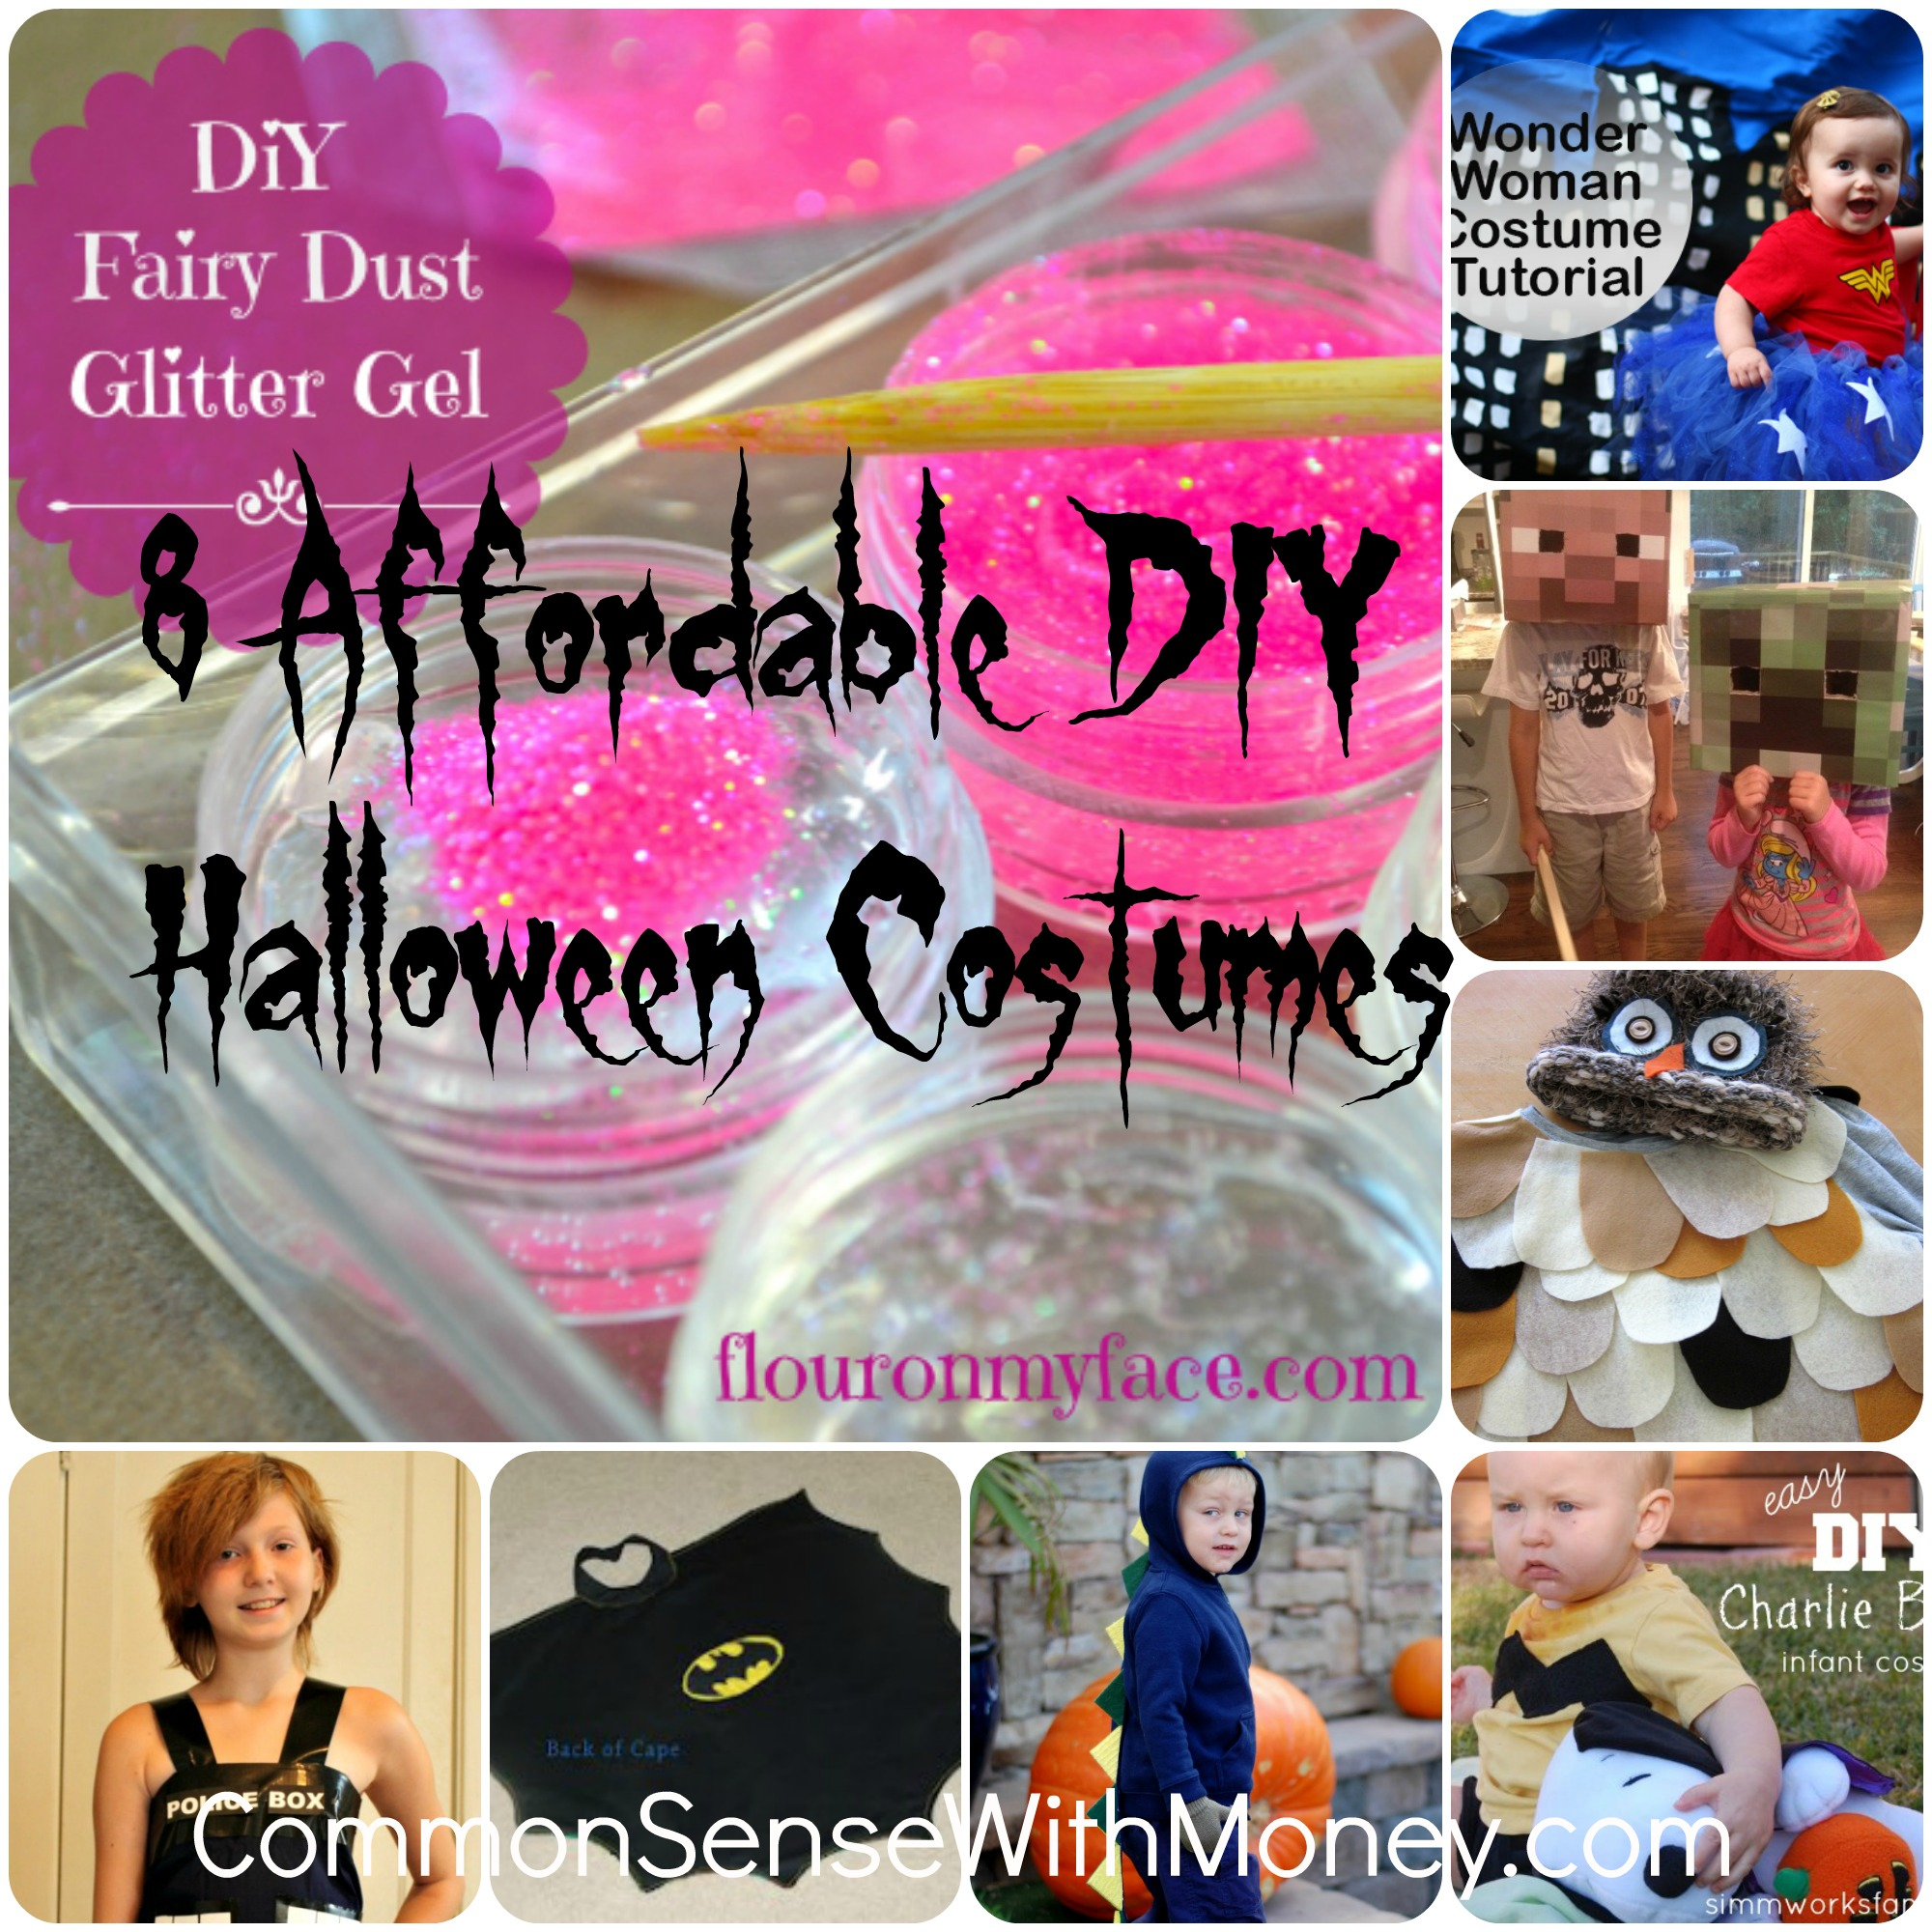 HalloweenCostumesCSWM 8 DIY Halloween Costumes